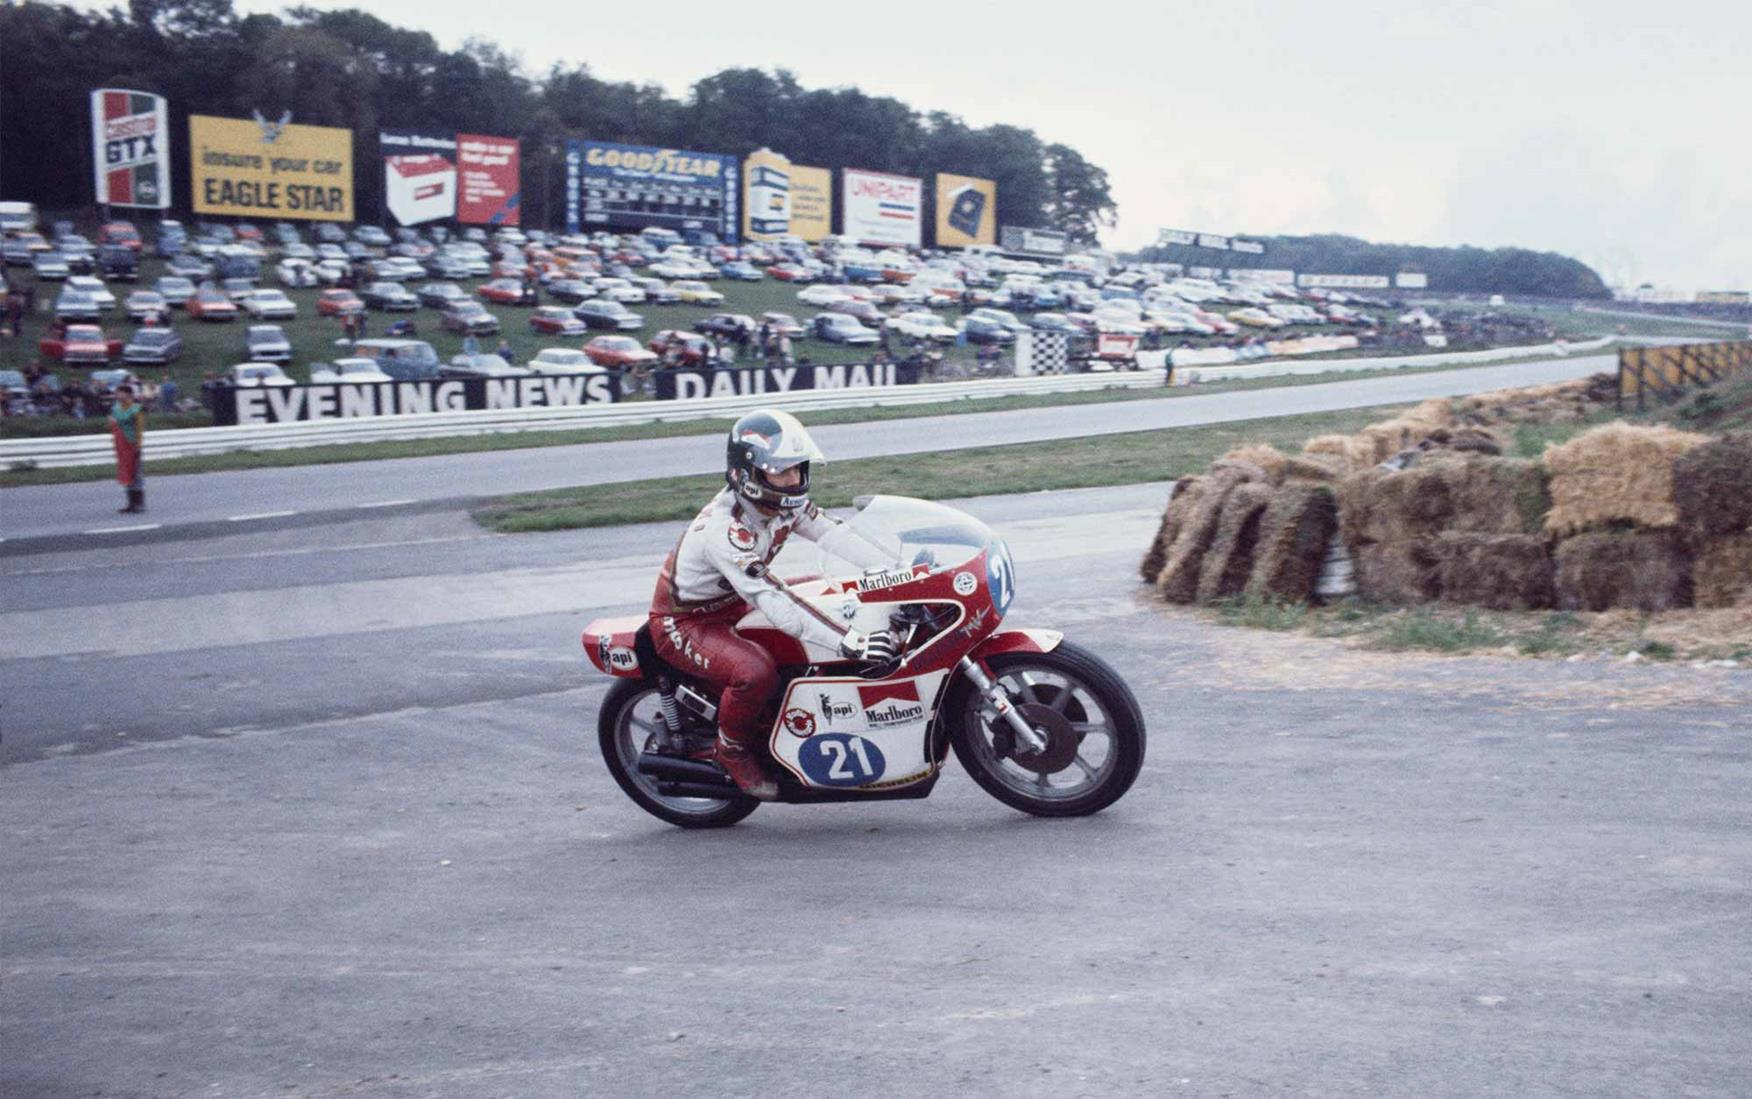 Agostini on his 350 MV Agusta in 1976 at Brands Hatch